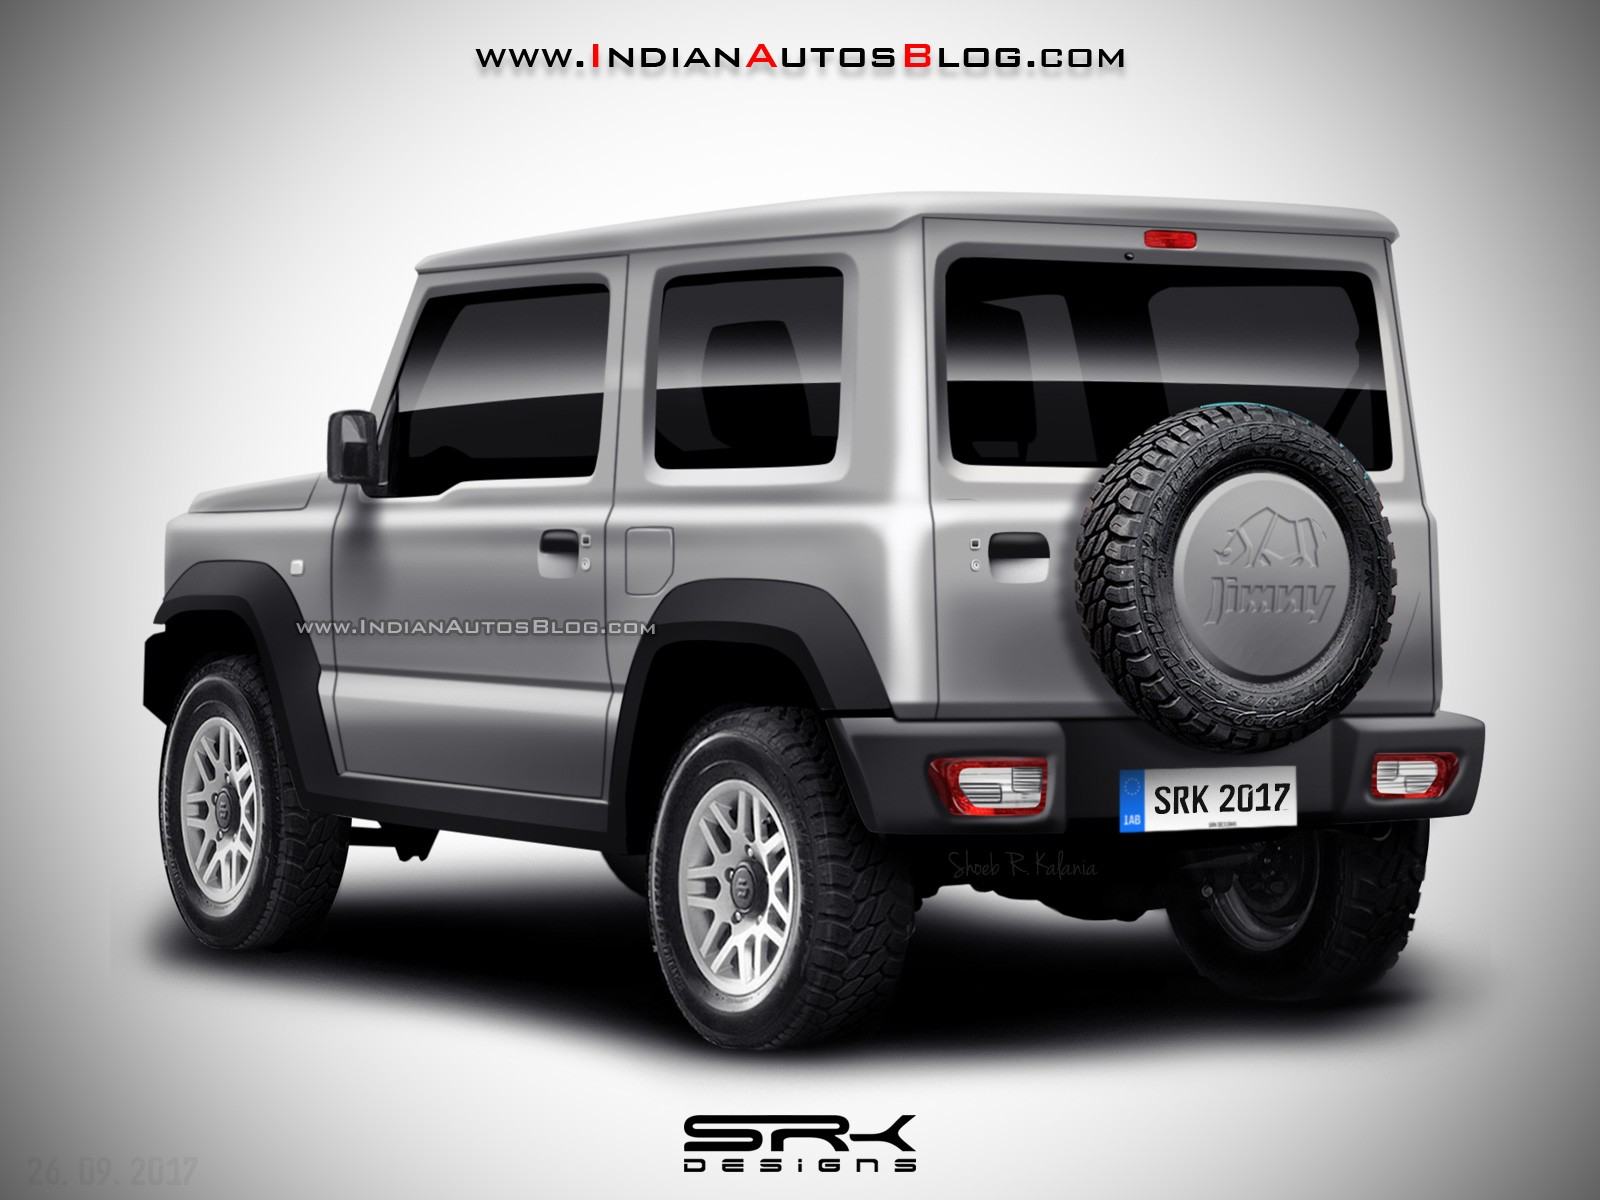 2018 suzuki jimny spied without camouflage debut imminent. Black Bedroom Furniture Sets. Home Design Ideas